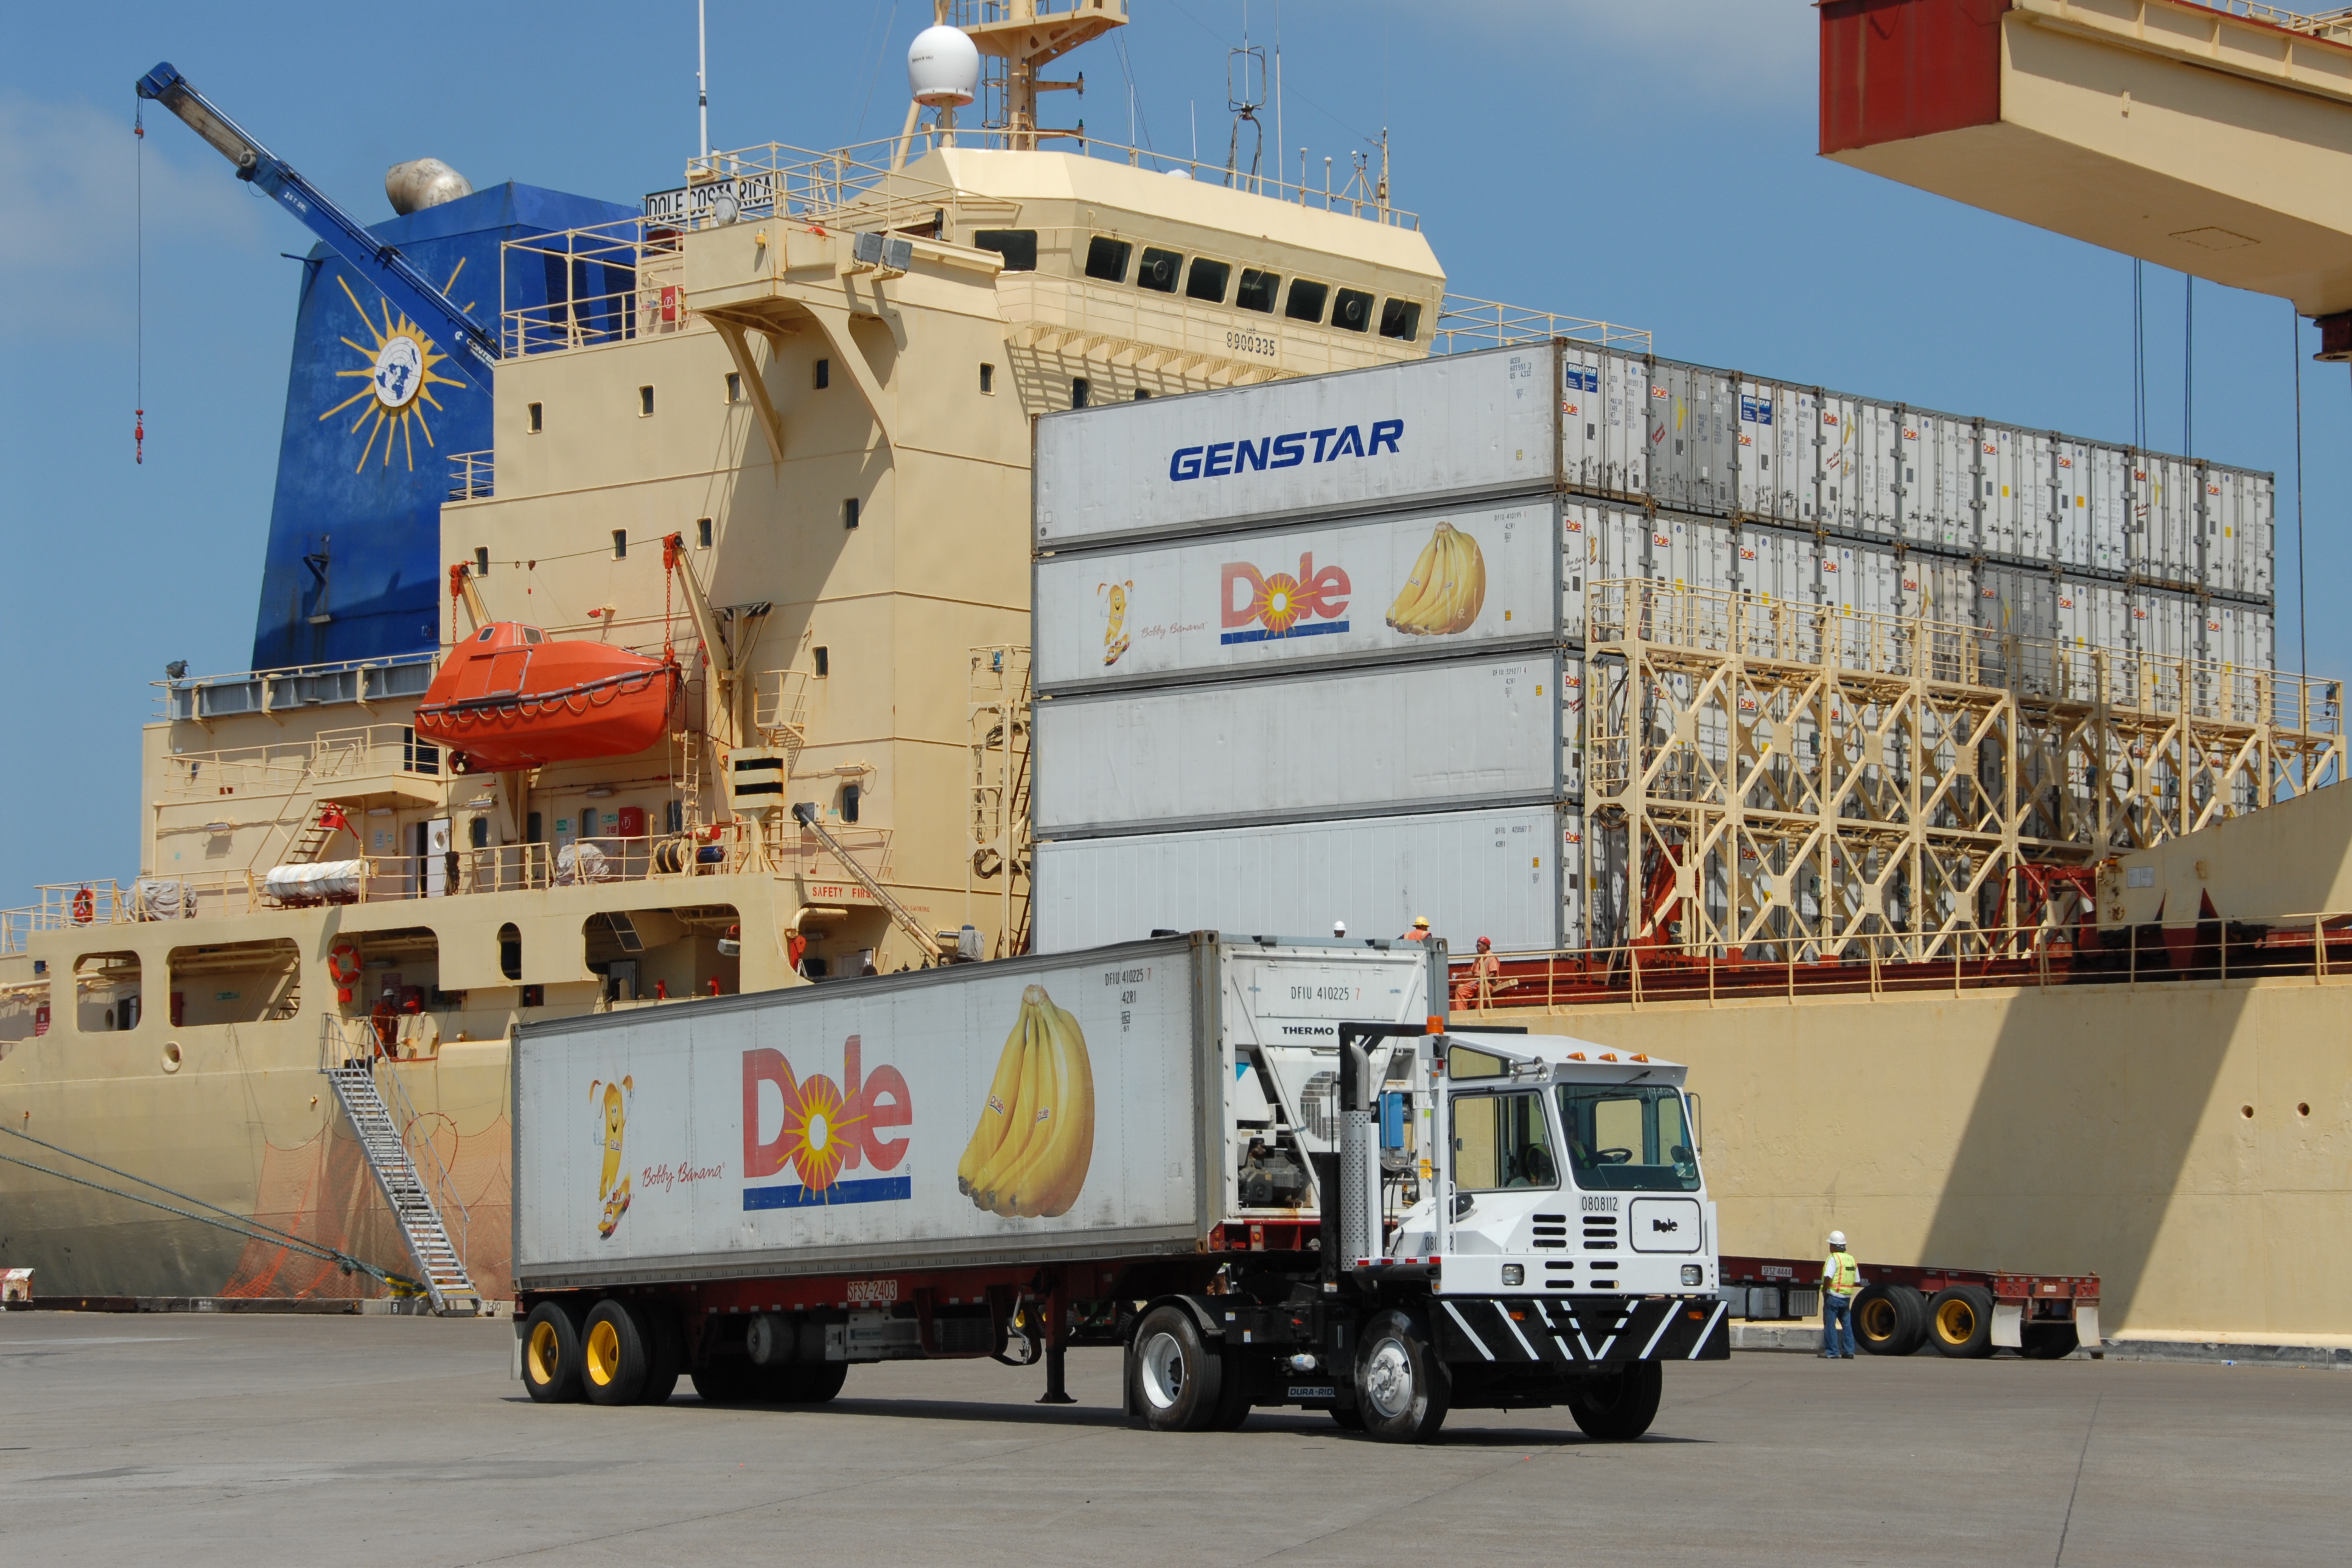 A truck fitted with a container of Dole bananas from a cargo ship